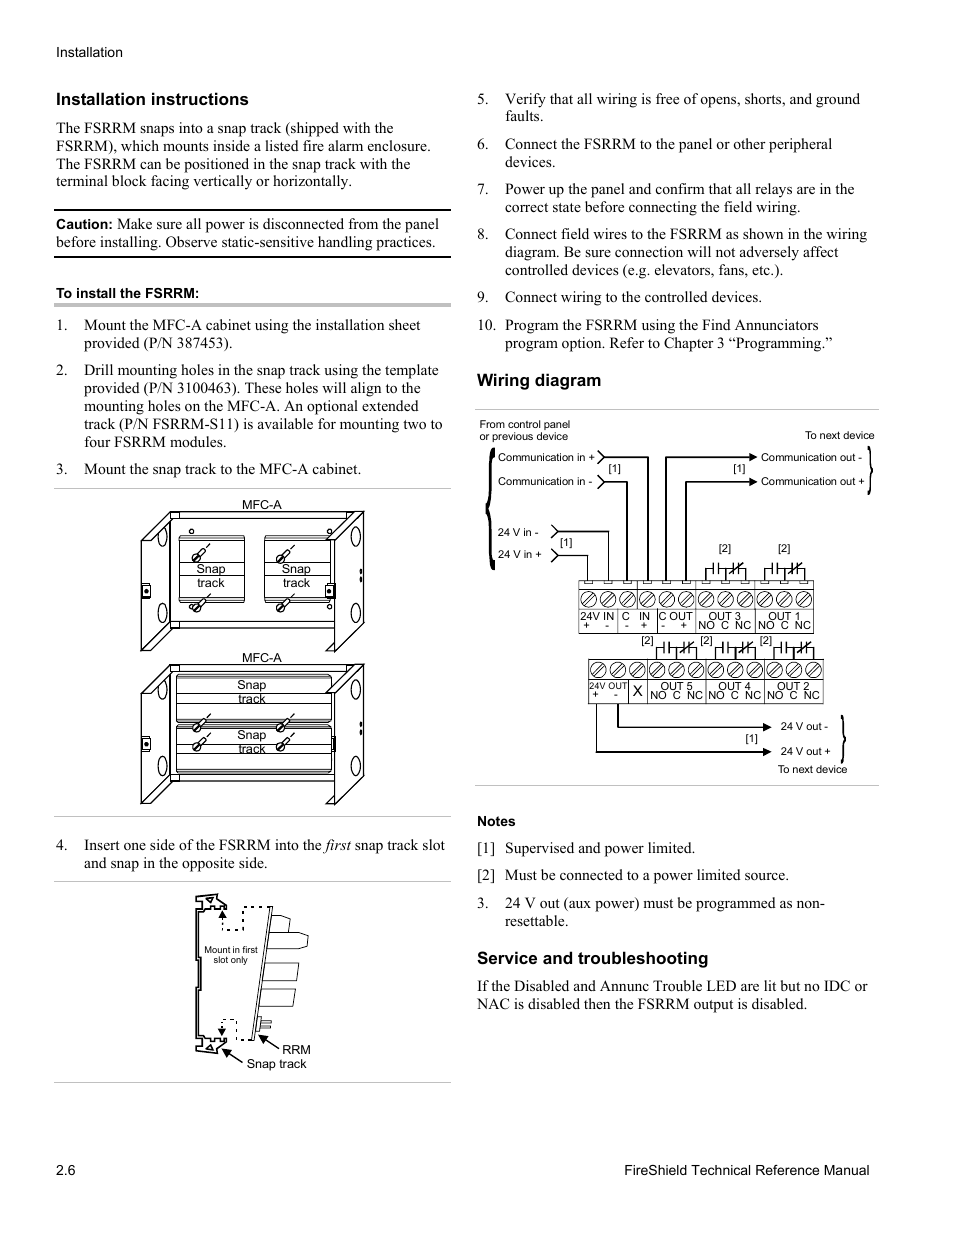 Installation Instructions  Wiring Diagram  Service And